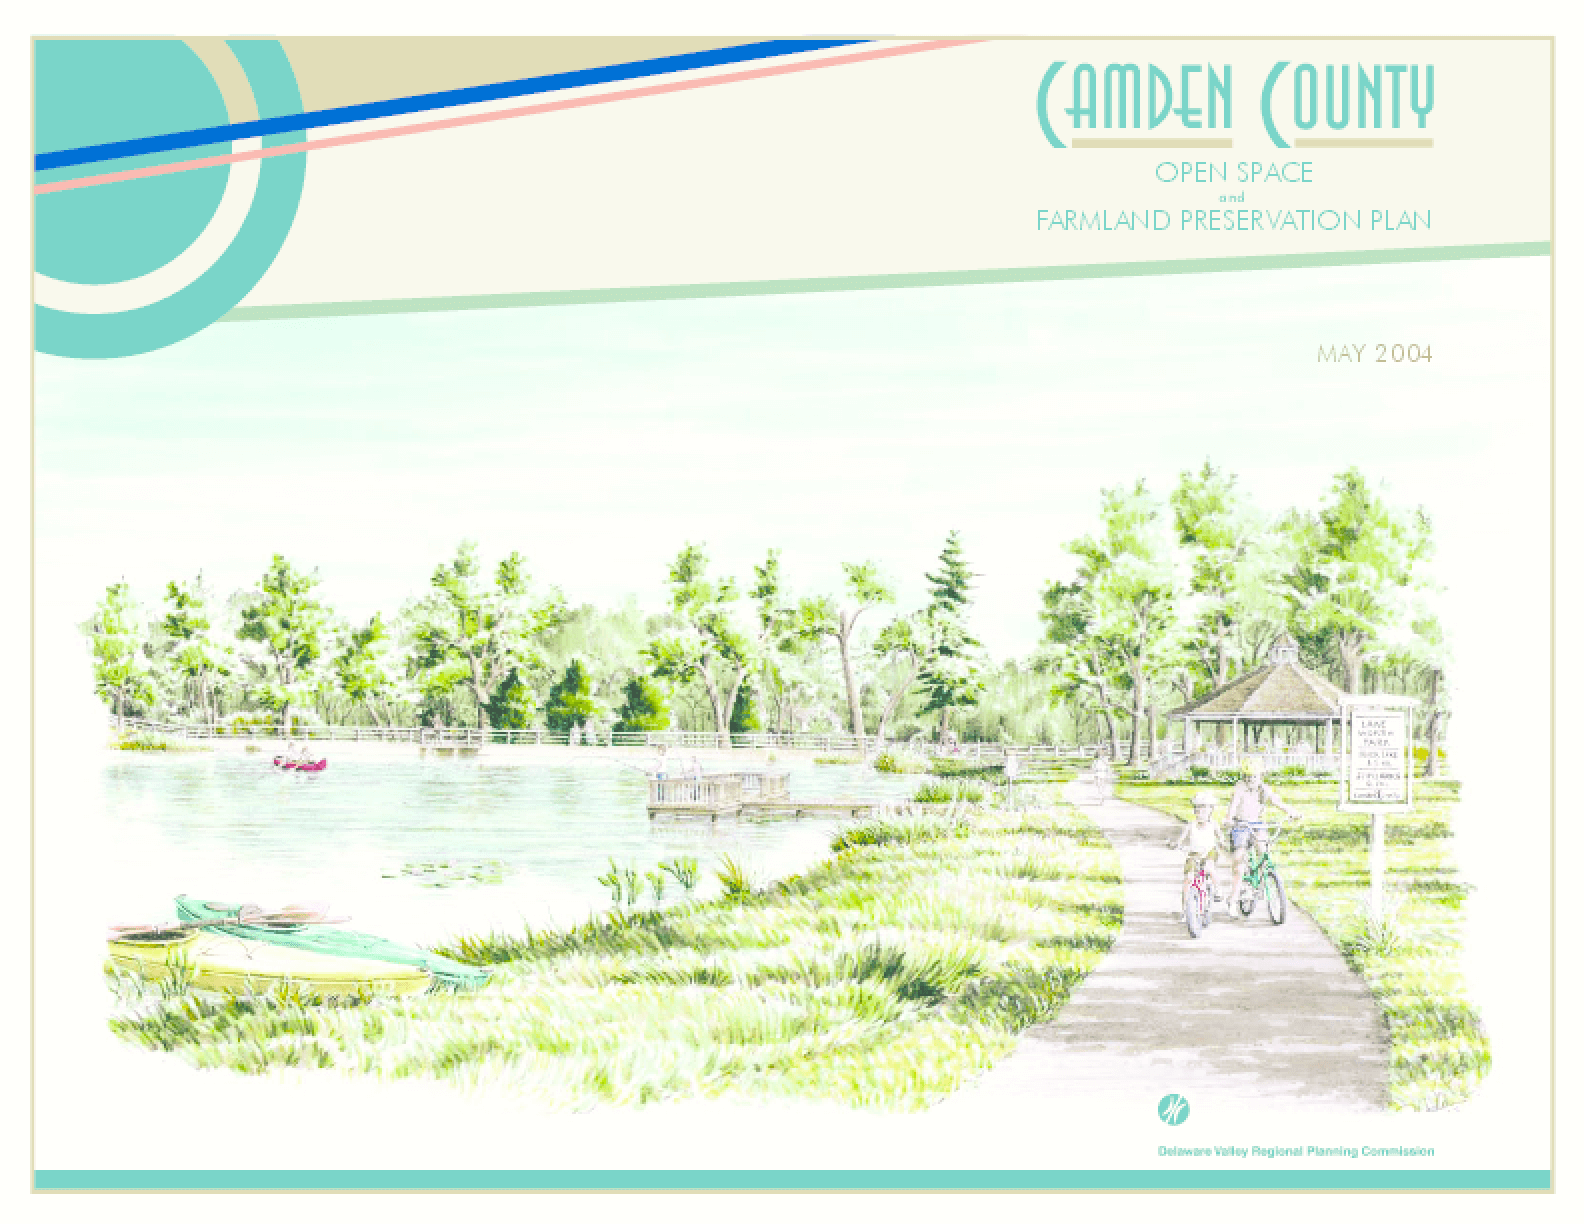 Camden County Open Space and Farmland Preservation Plan